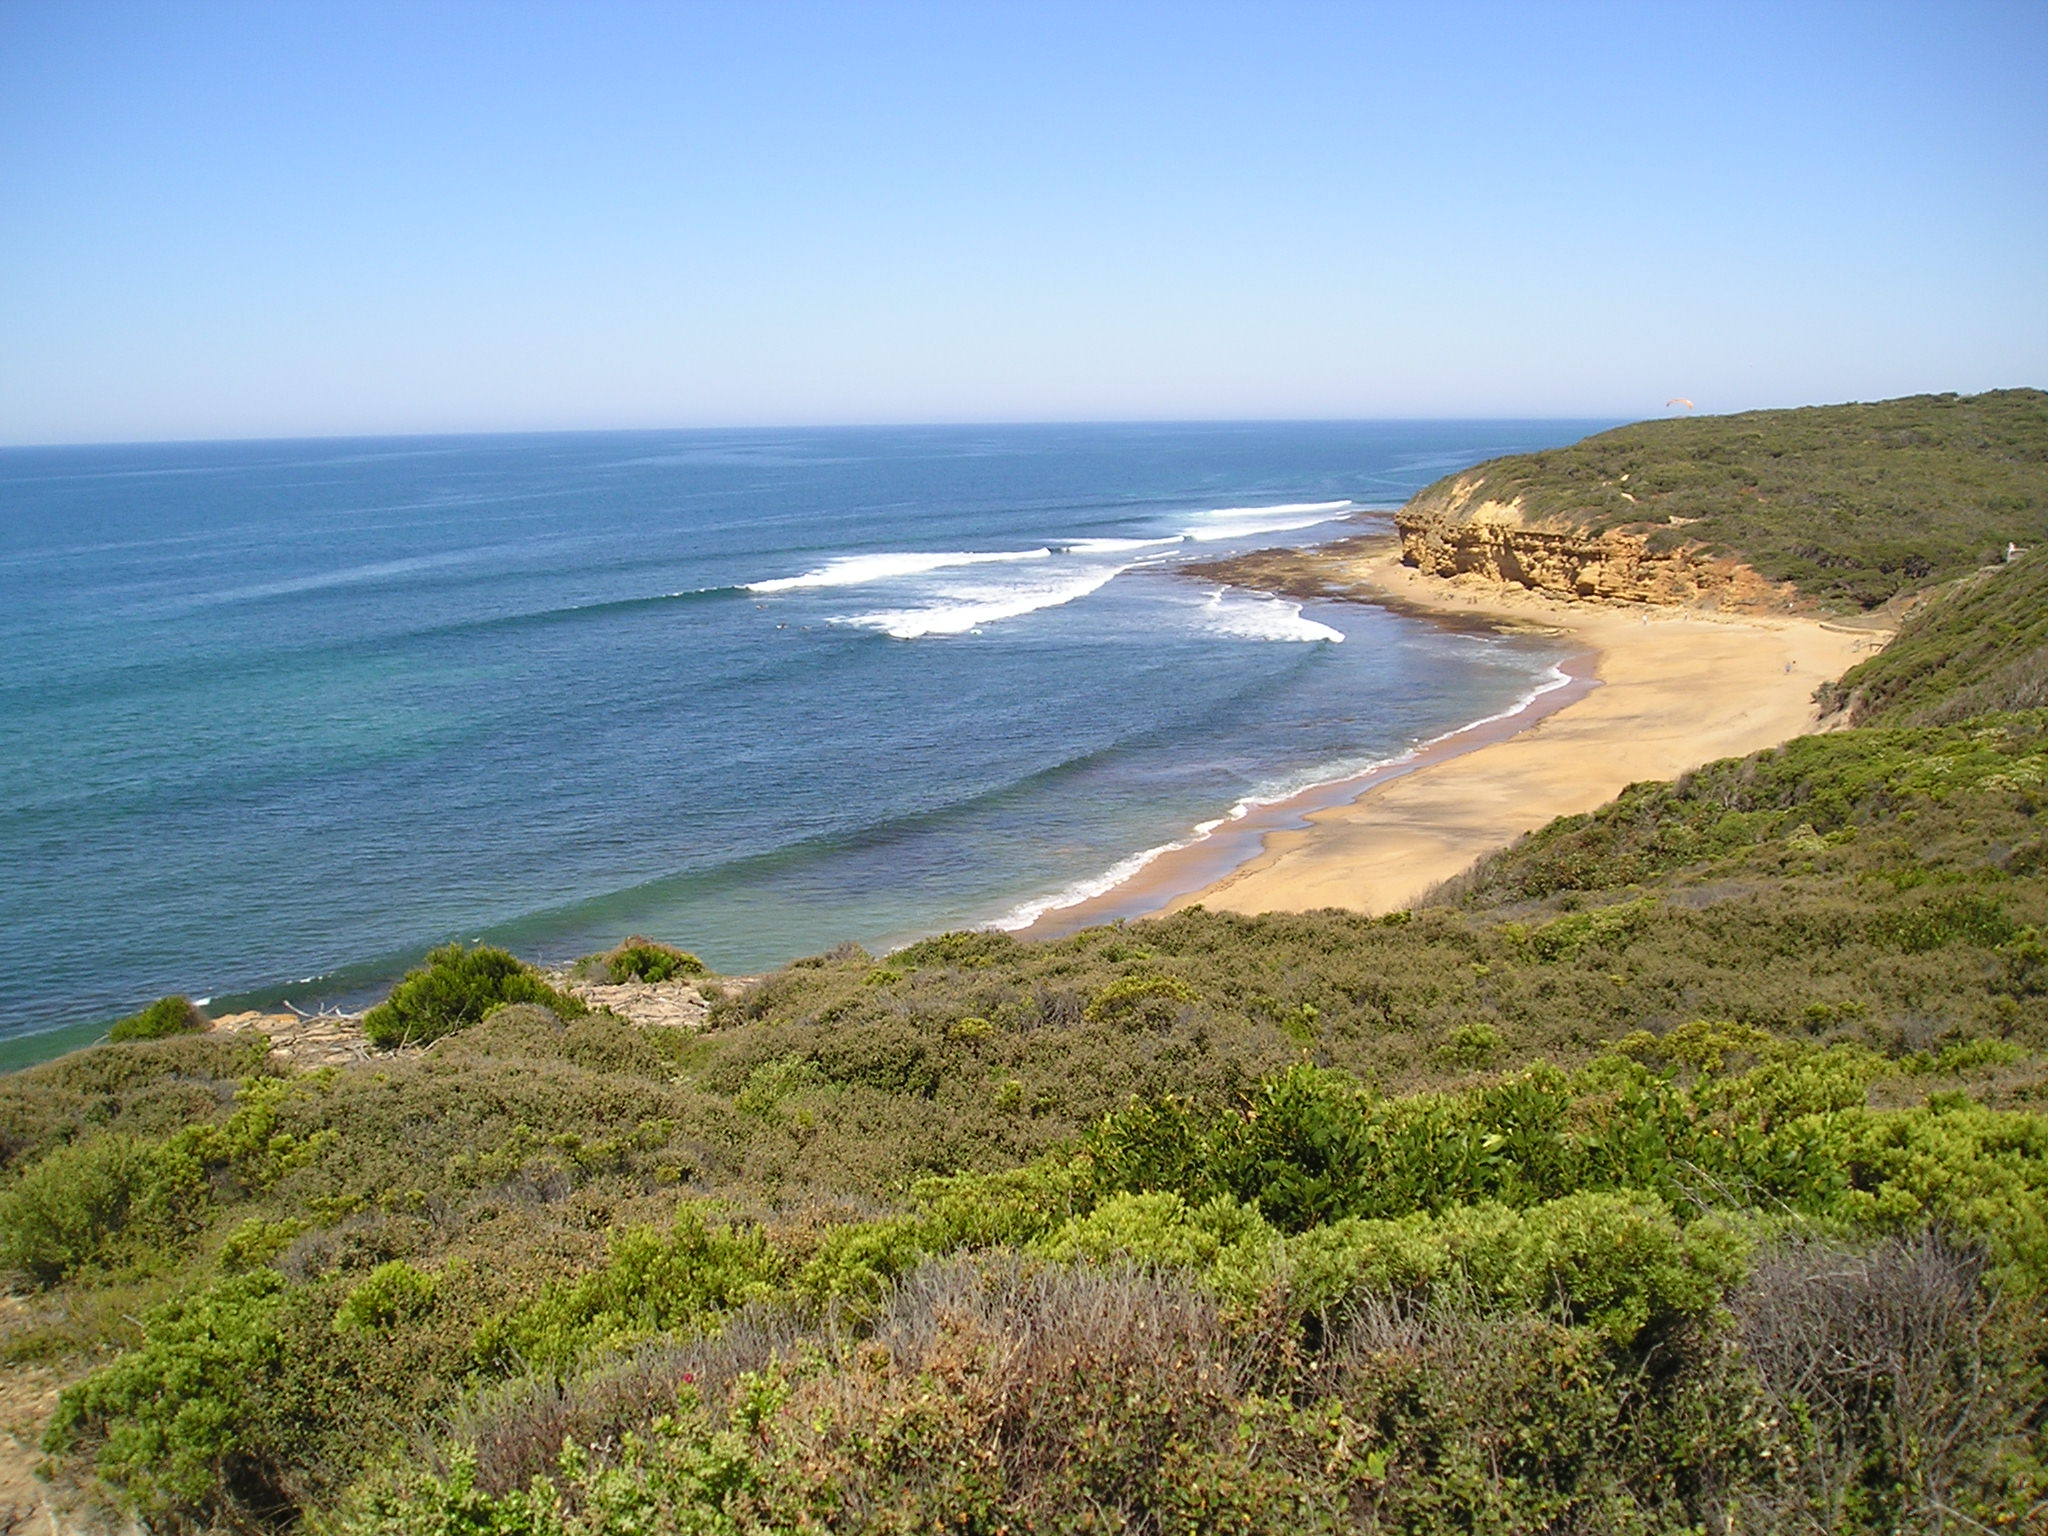 File:Bells-Beach-View.jpg - Wikipedia